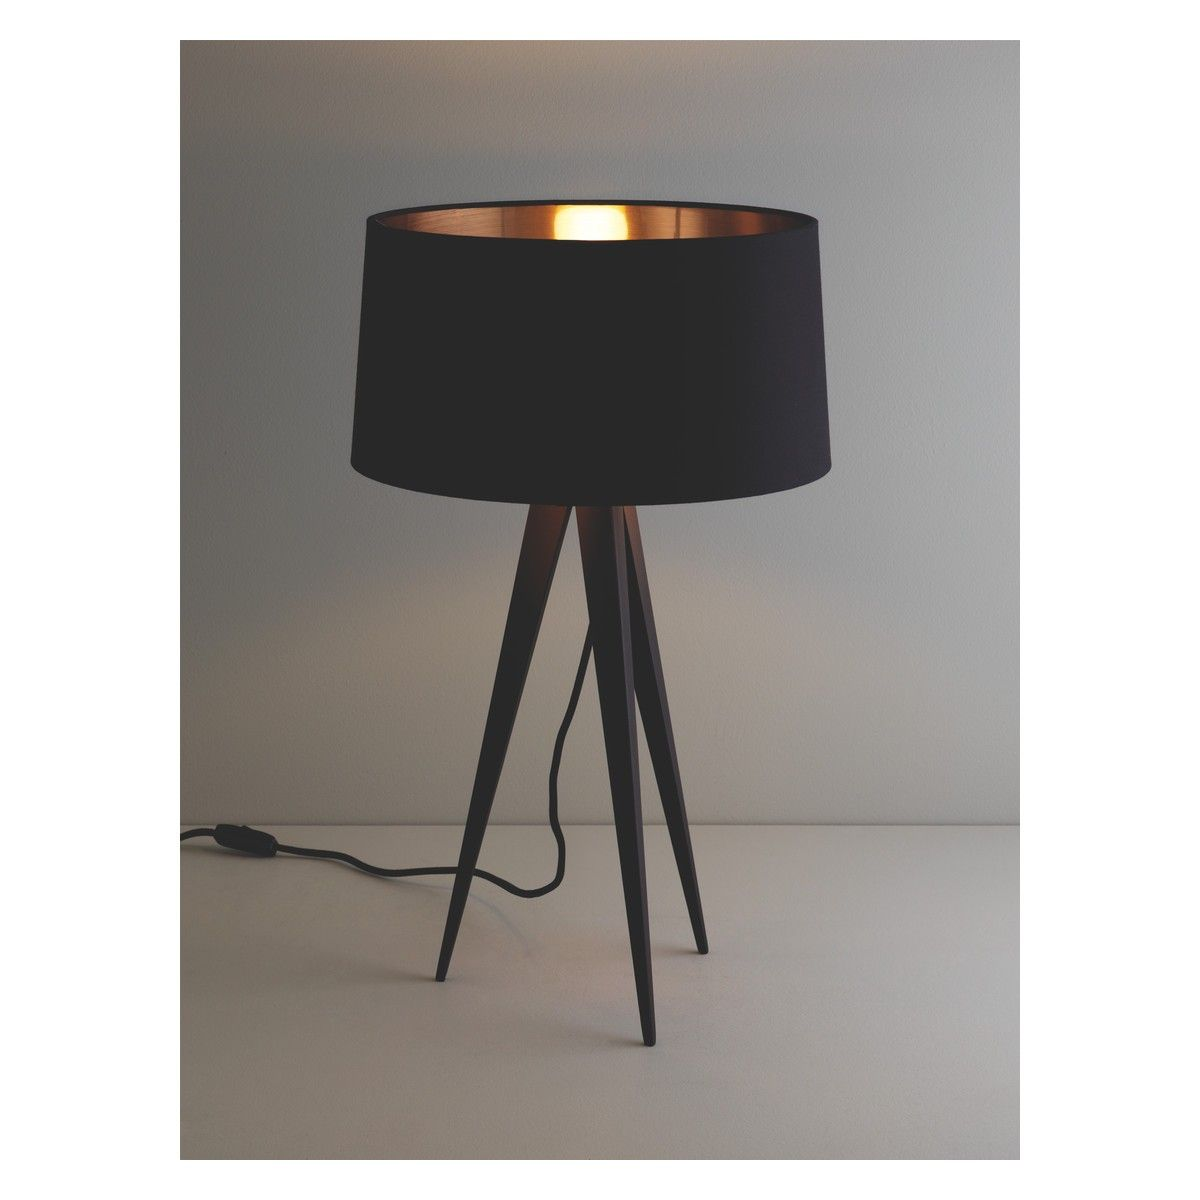 Yves black metal tripod table lamp base home pinterest tripod yves black metal tripod table lamp base aloadofball Images